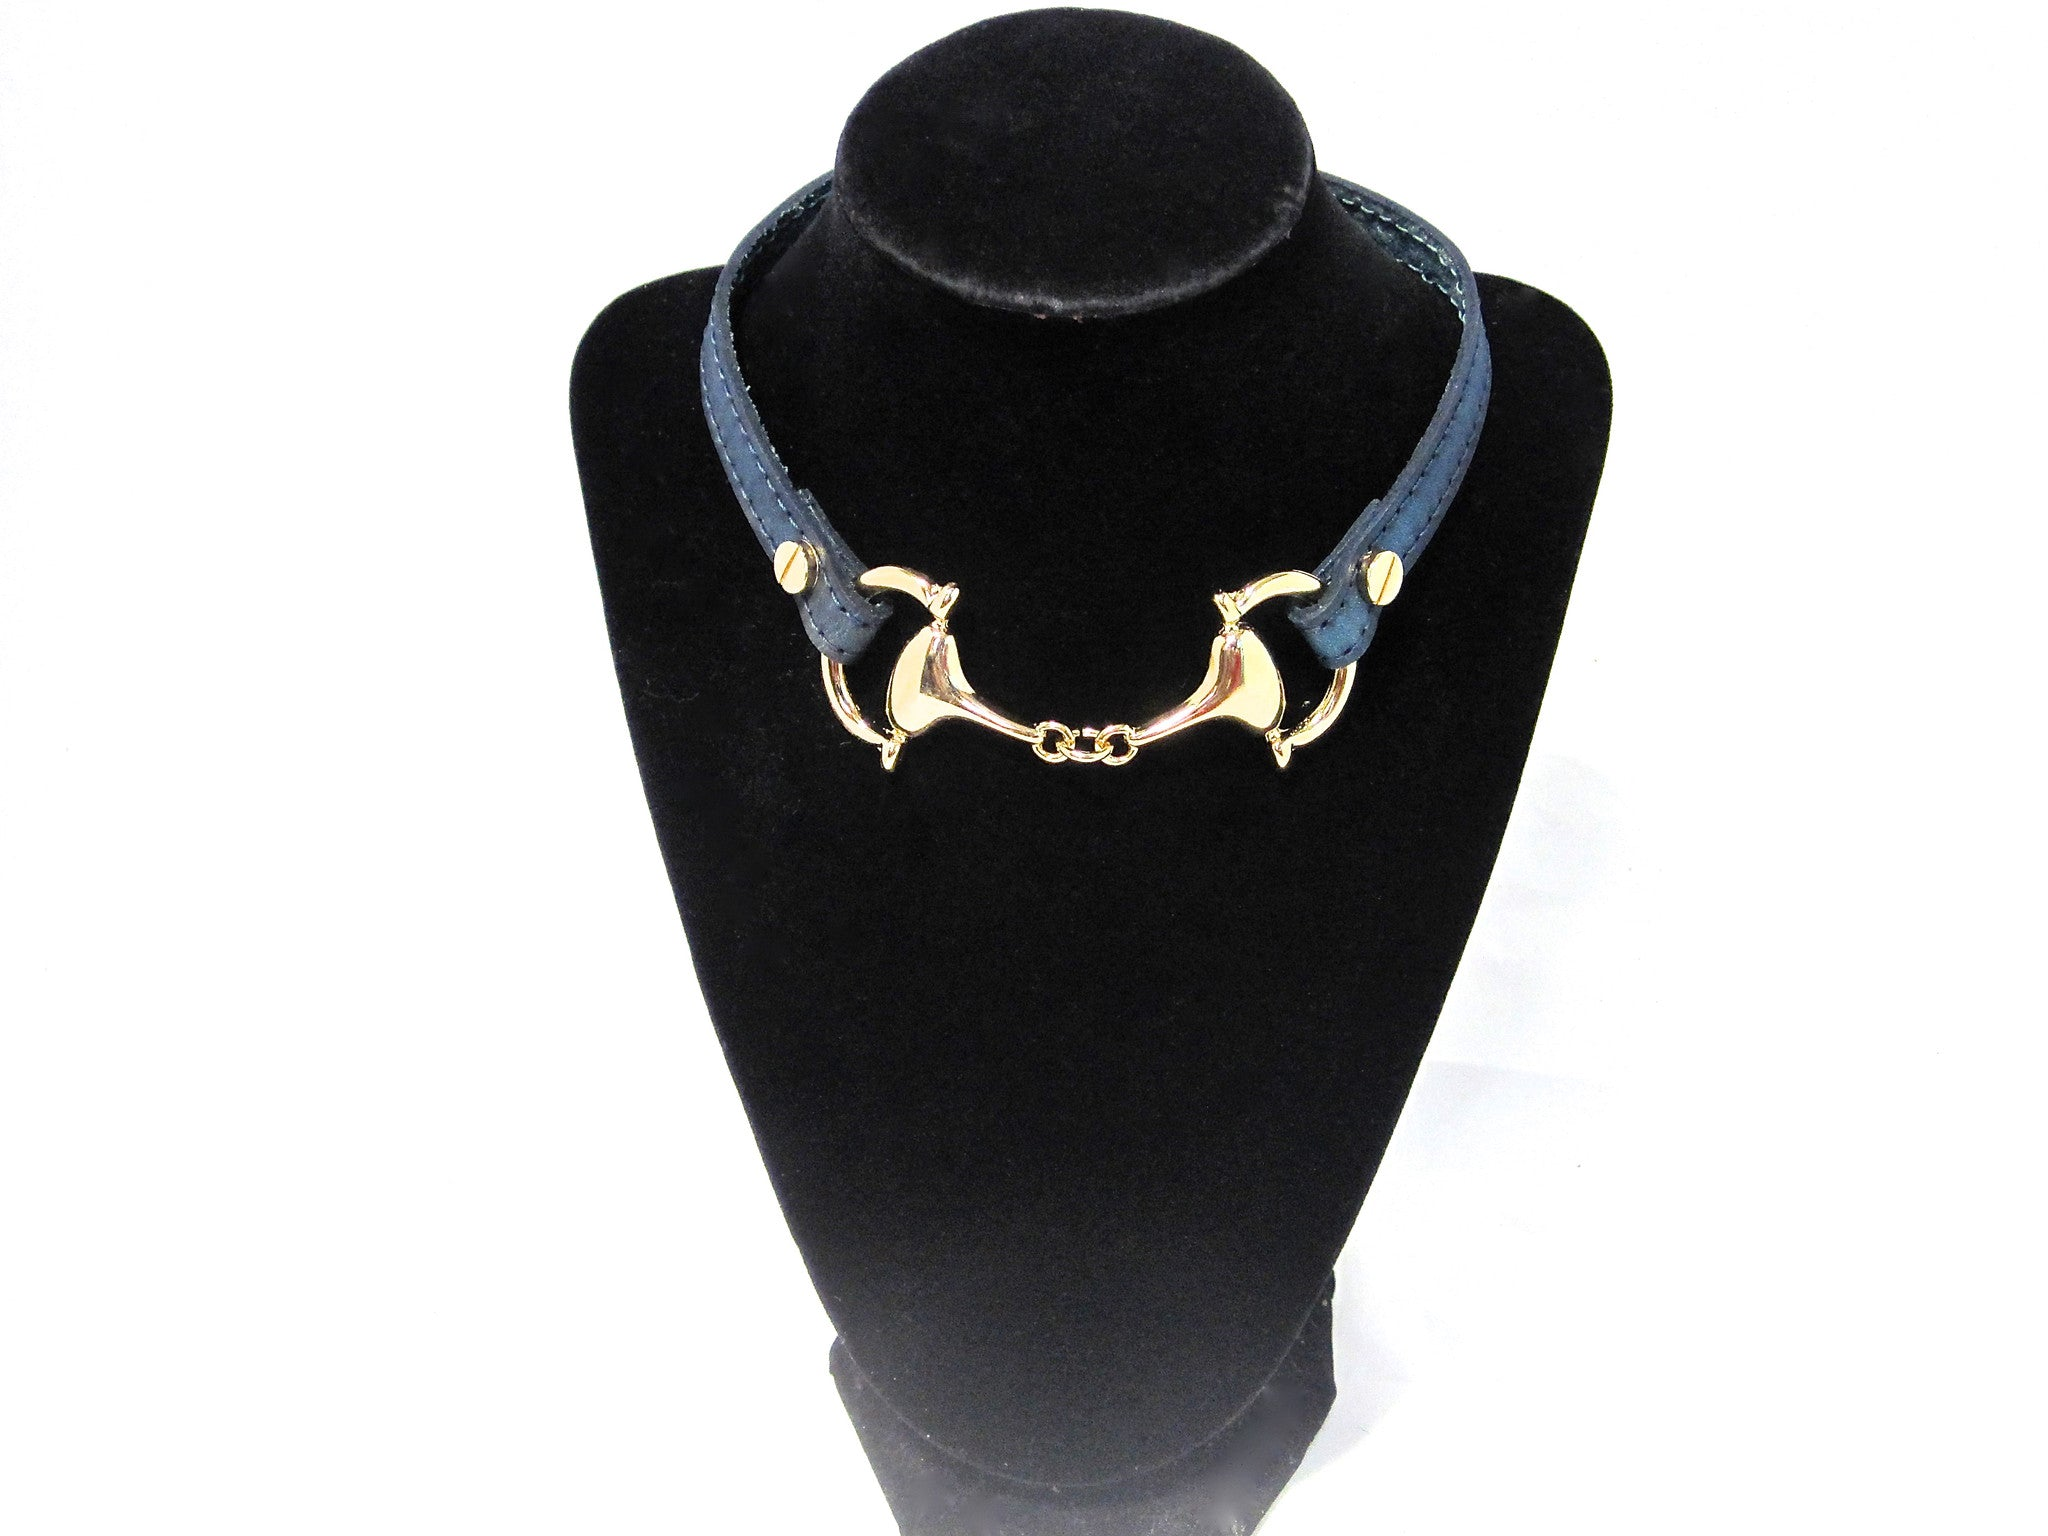 LEATHER CHOKER NECKLACE WITH D-RING HORSE BIT PENDANT by nyet jewelry